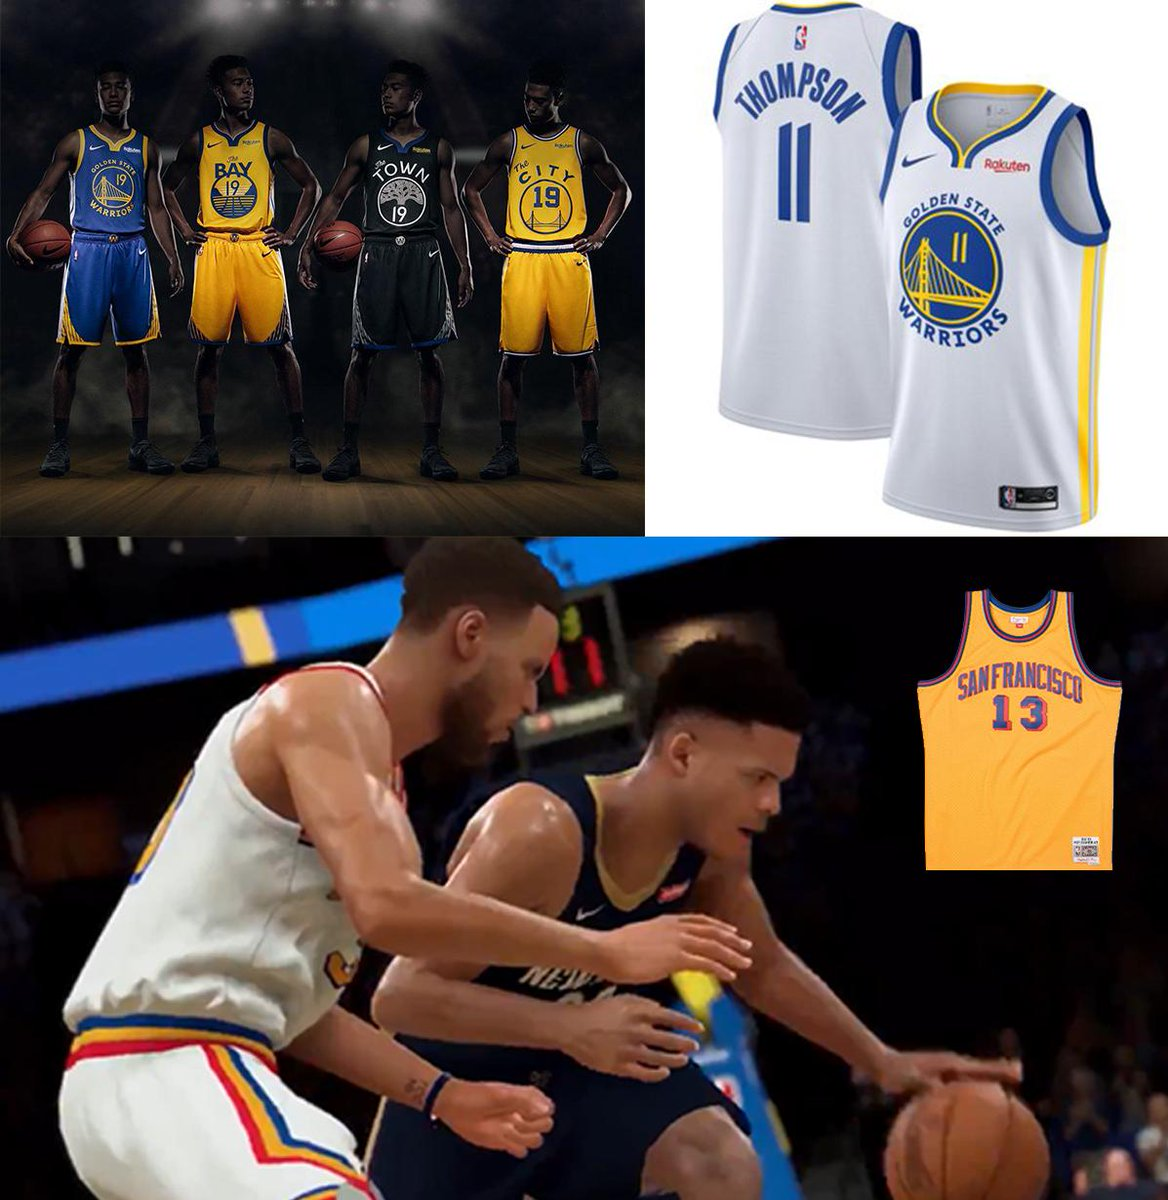 RT @GSWReddit: Warriors 19/20 Uniforms https://t.co/K3J9F10mRH